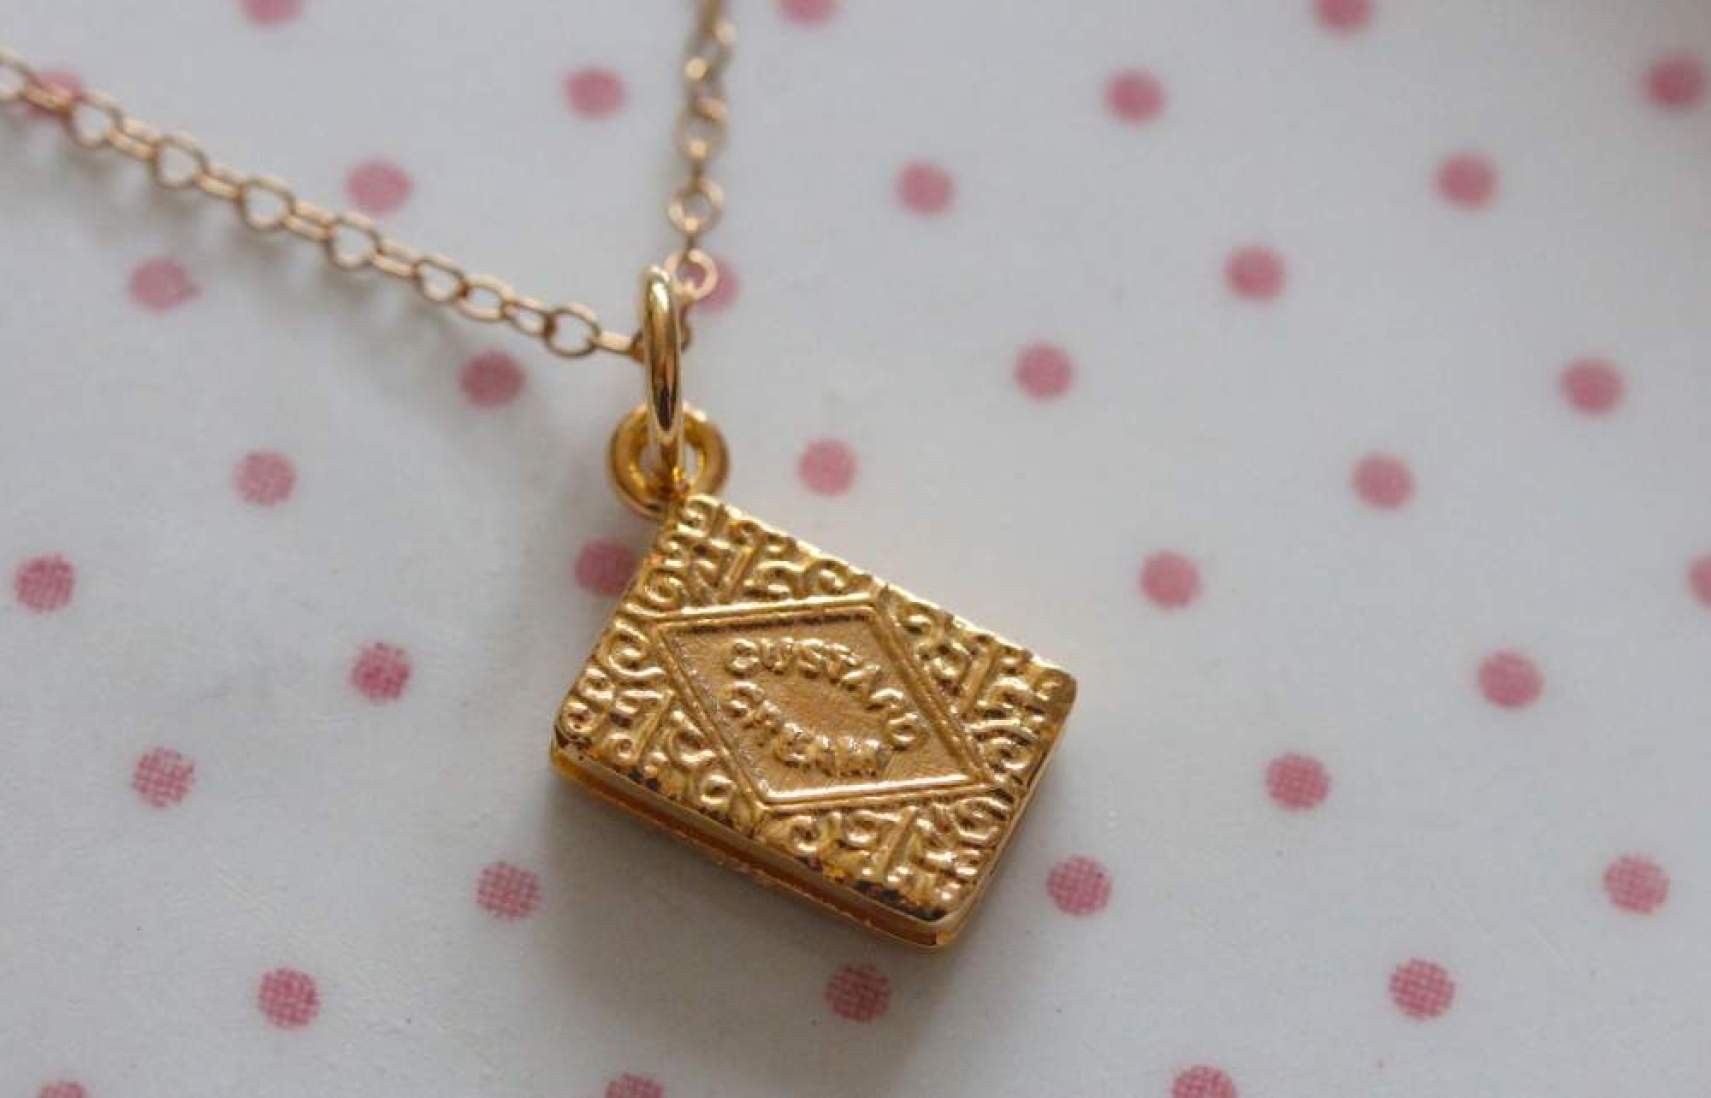 lily charmed custard cream biscuit necklace